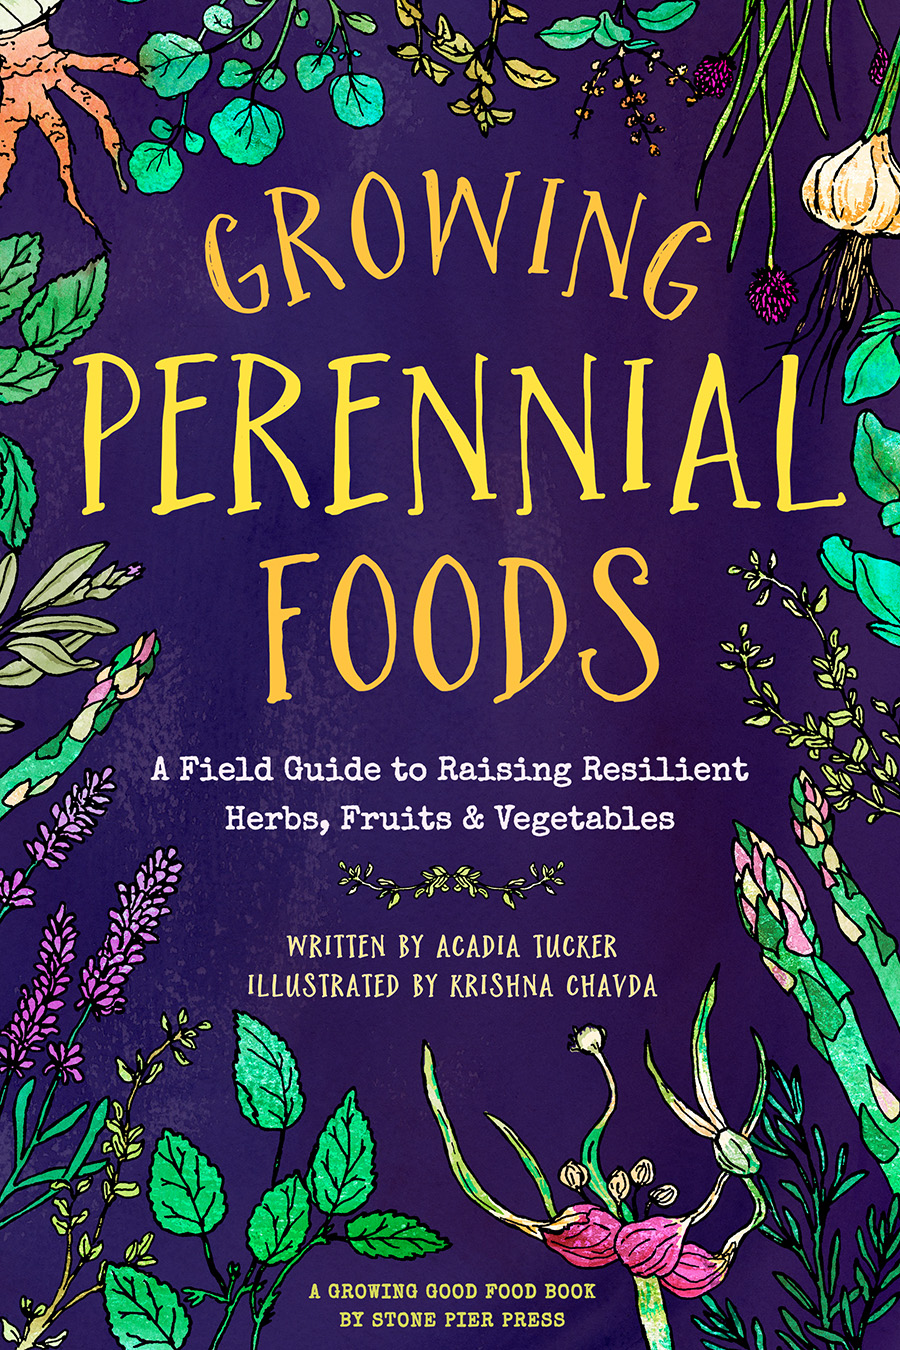 SPP_Growing Perennial Foods 3.indd